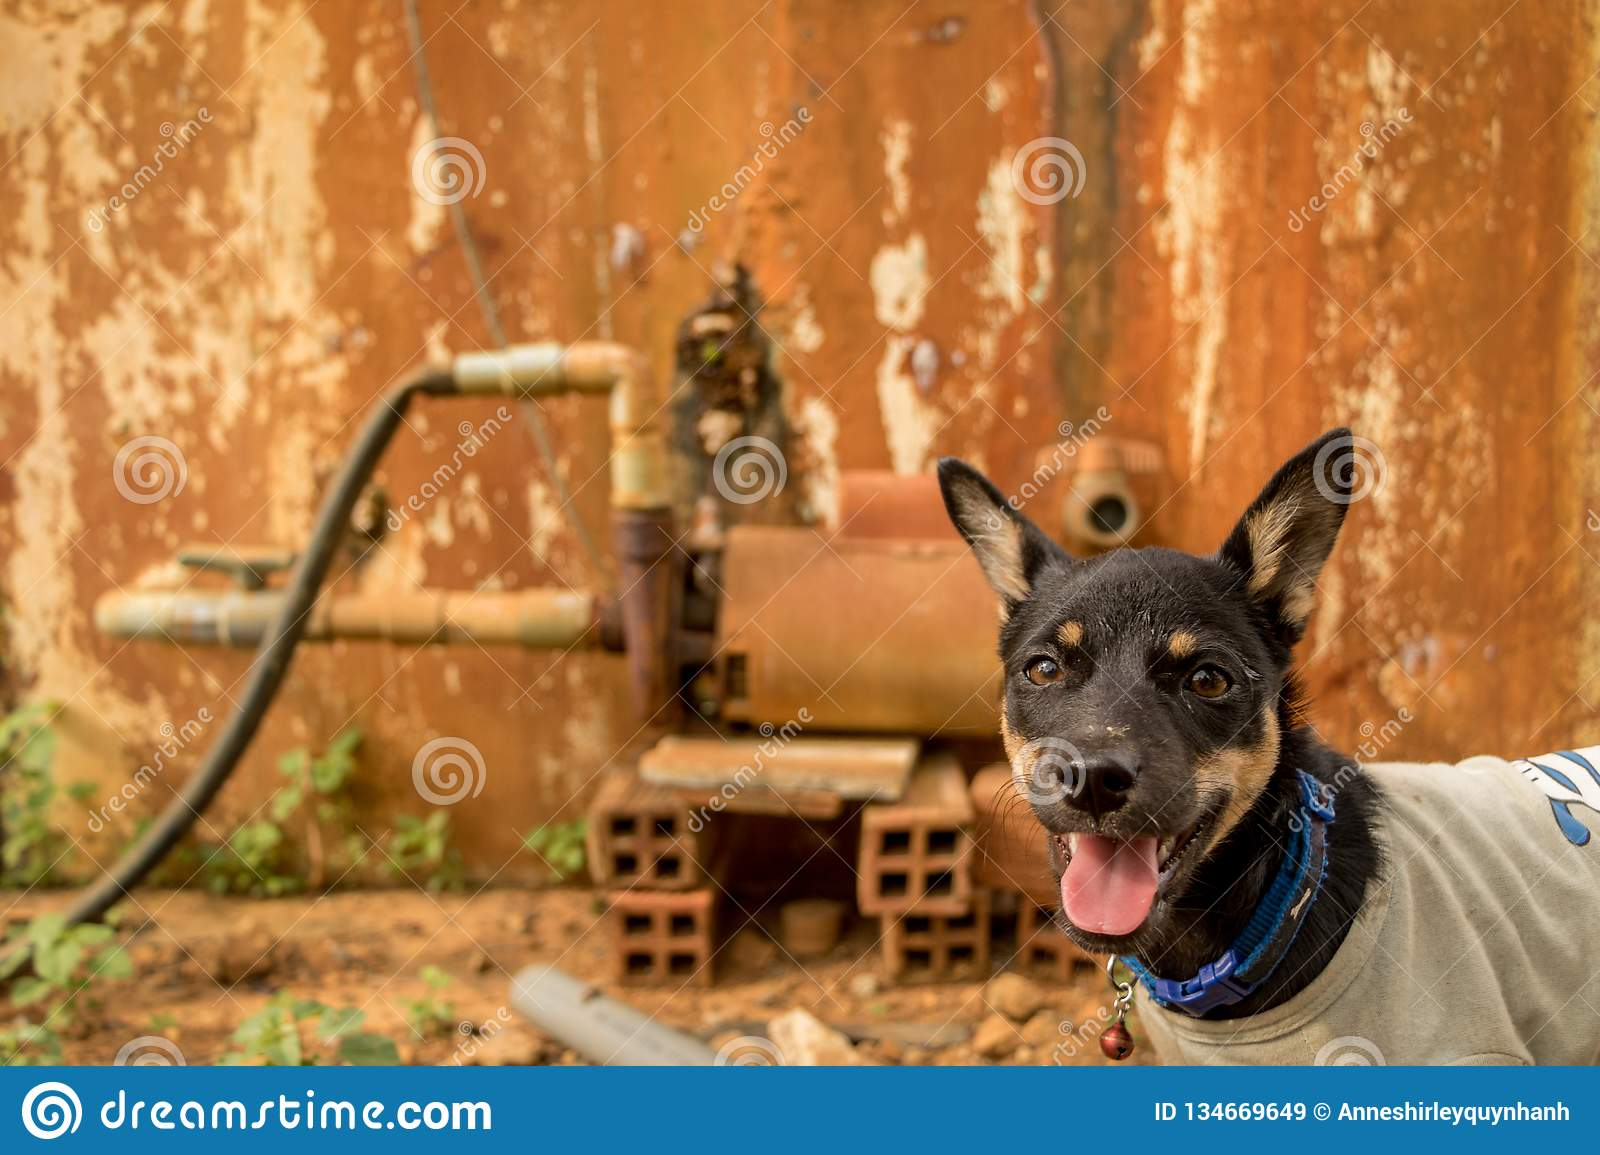 Happy Little Puppy with the Tongue Out - Pet Wearing T-shirt - Dog with Curious Face - Vintage Colorful Background